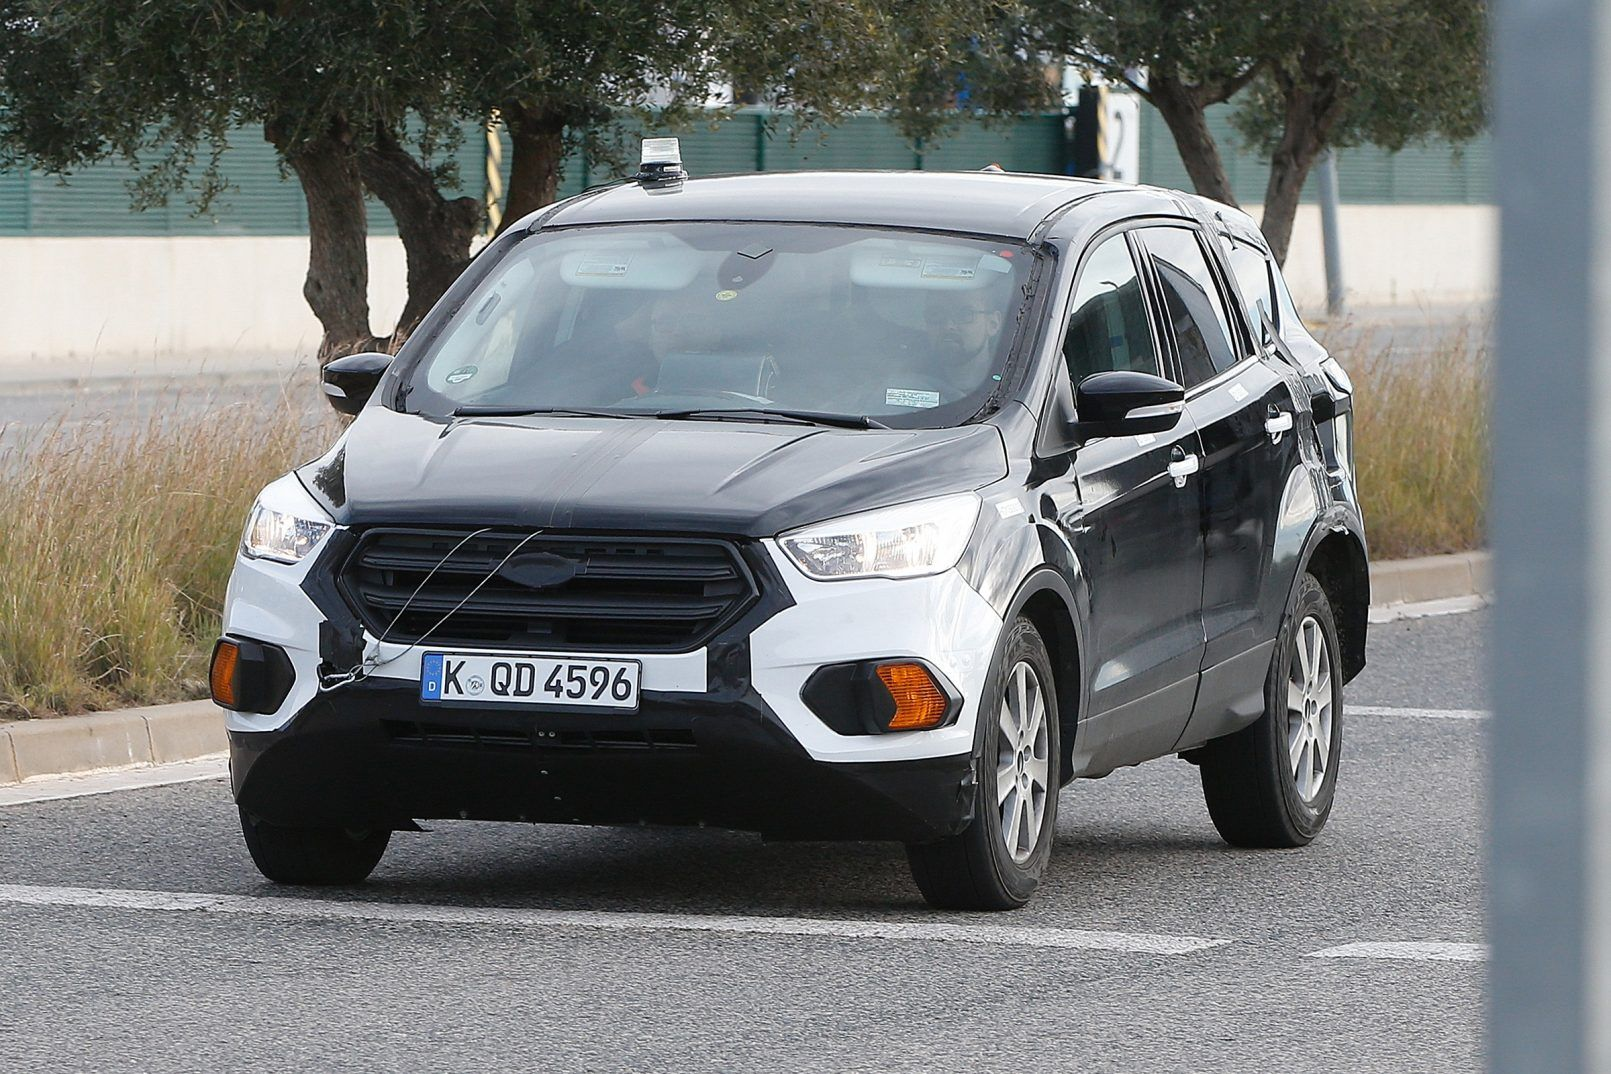 2020 Ford Kuga Review Engine Styling Release Date Price